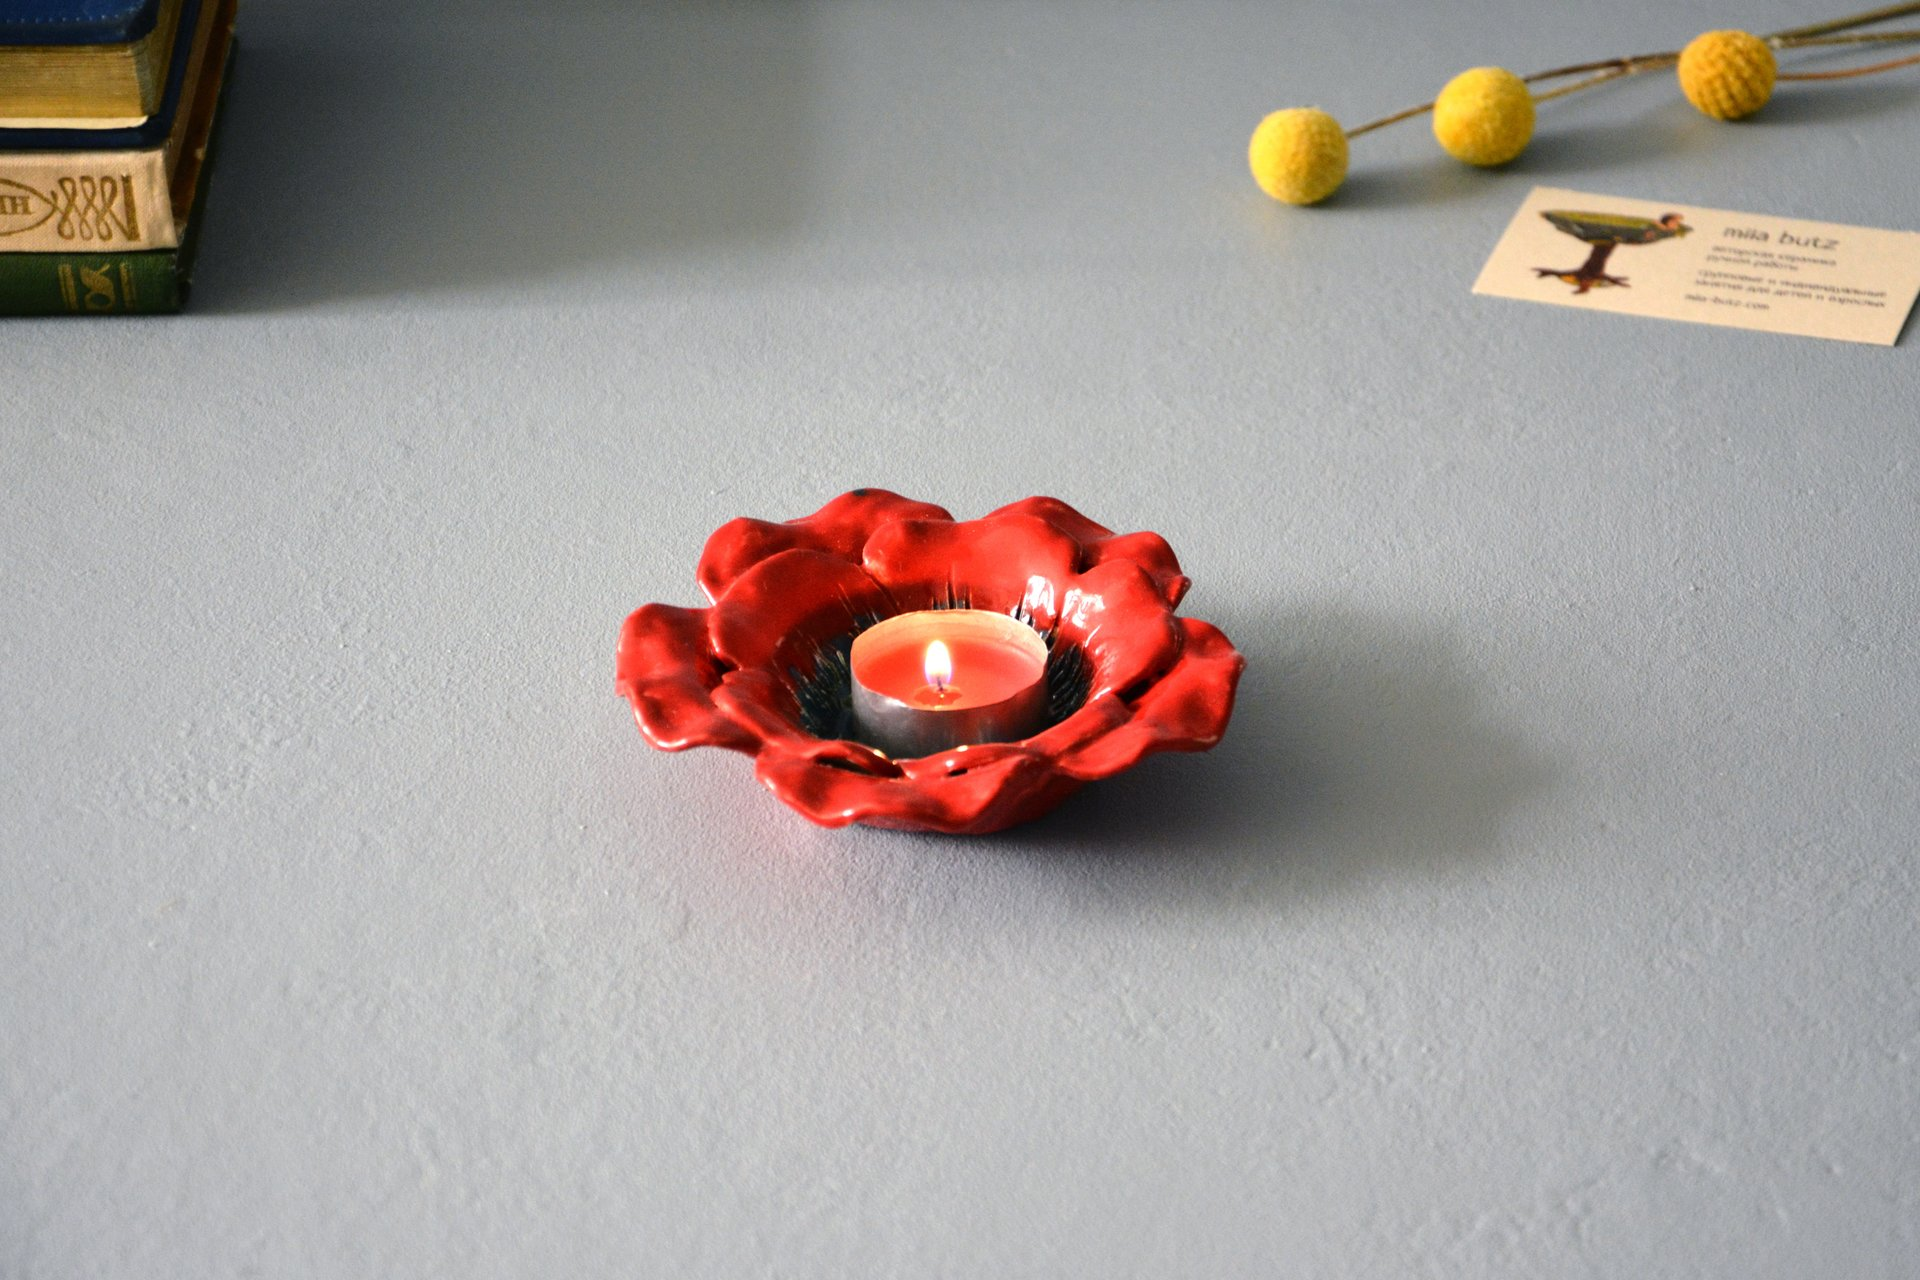 Red candlestick in the shape of a poppy flower, for ordinary candles and candles for tablets, diameter - 12 cm, photo 2 of 5.